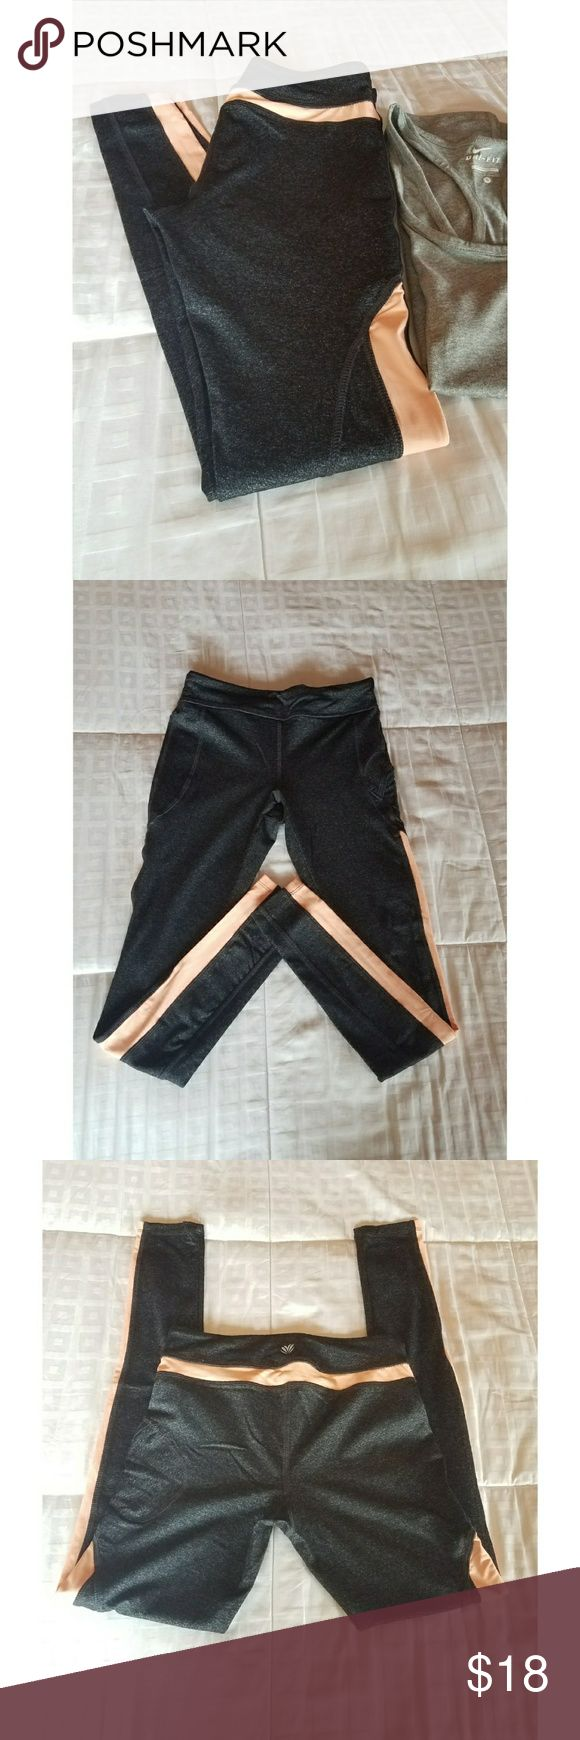 Leggings High- Waisted, thick comfy material, vibrant fun peach color block that run down the thighs and accross back, never worn but tags were removed, has inside pocket for keys/cards/cash/or phone (and also pocket on the side (as shown on pic 4), brings drawstring but can be used without it, breathable material for those hot days at the gym! 💪 Forever 21 Pants Leggings